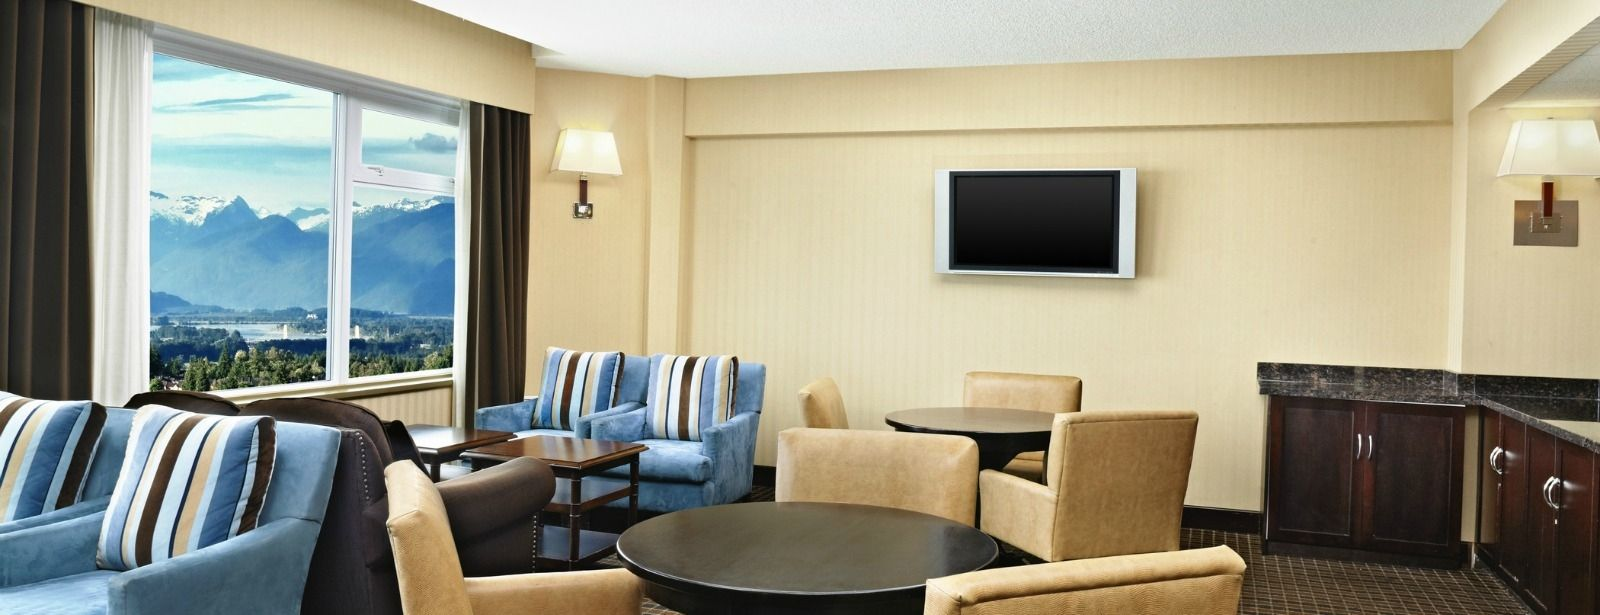 The Club Level Lounge, offers complimentary continental breakfast and snacks, as well as high speed internet access.